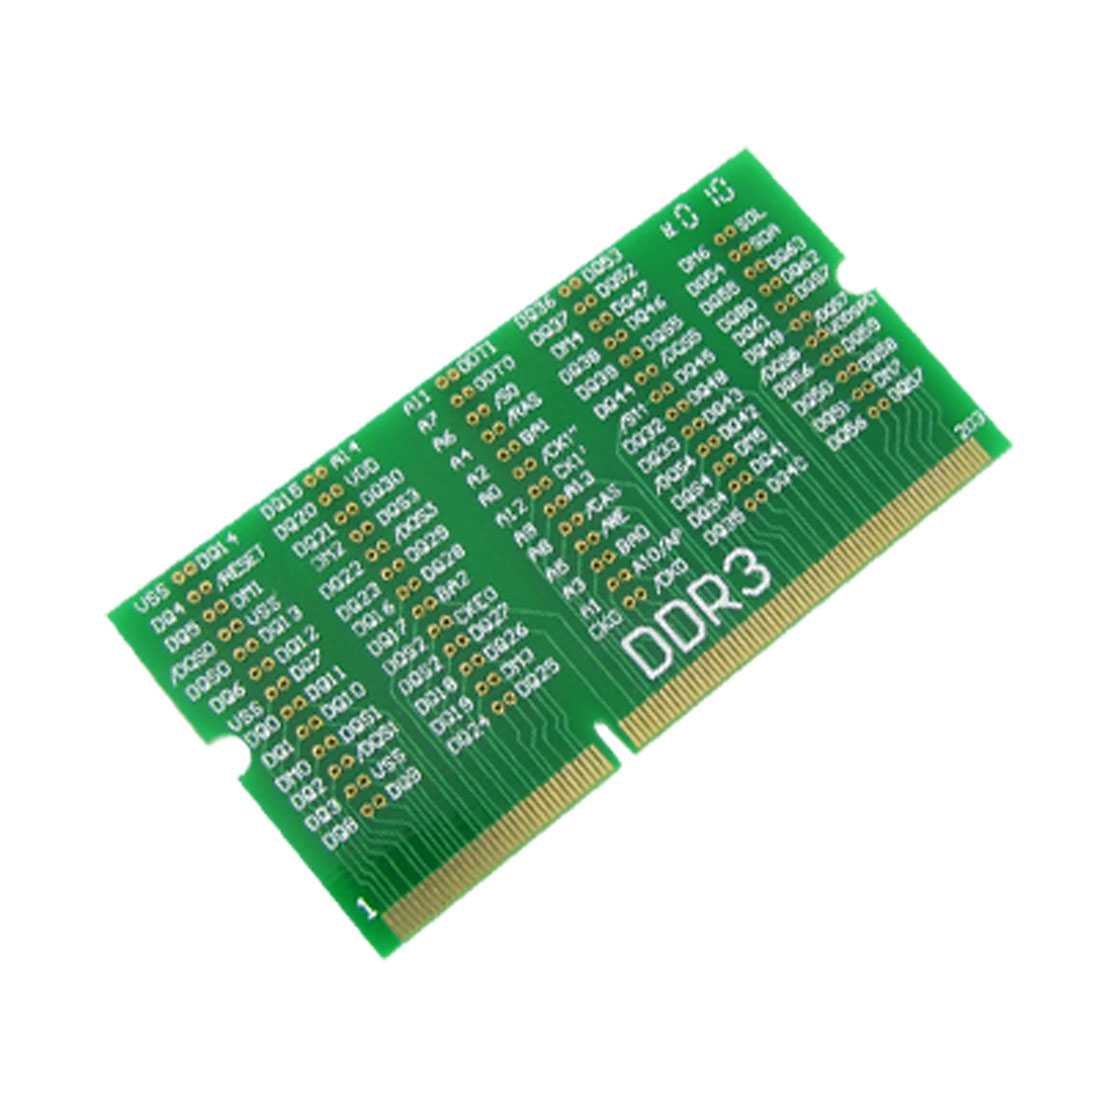 DDR3 Mini-PCI Resistance Dummy Load Card for Notebook